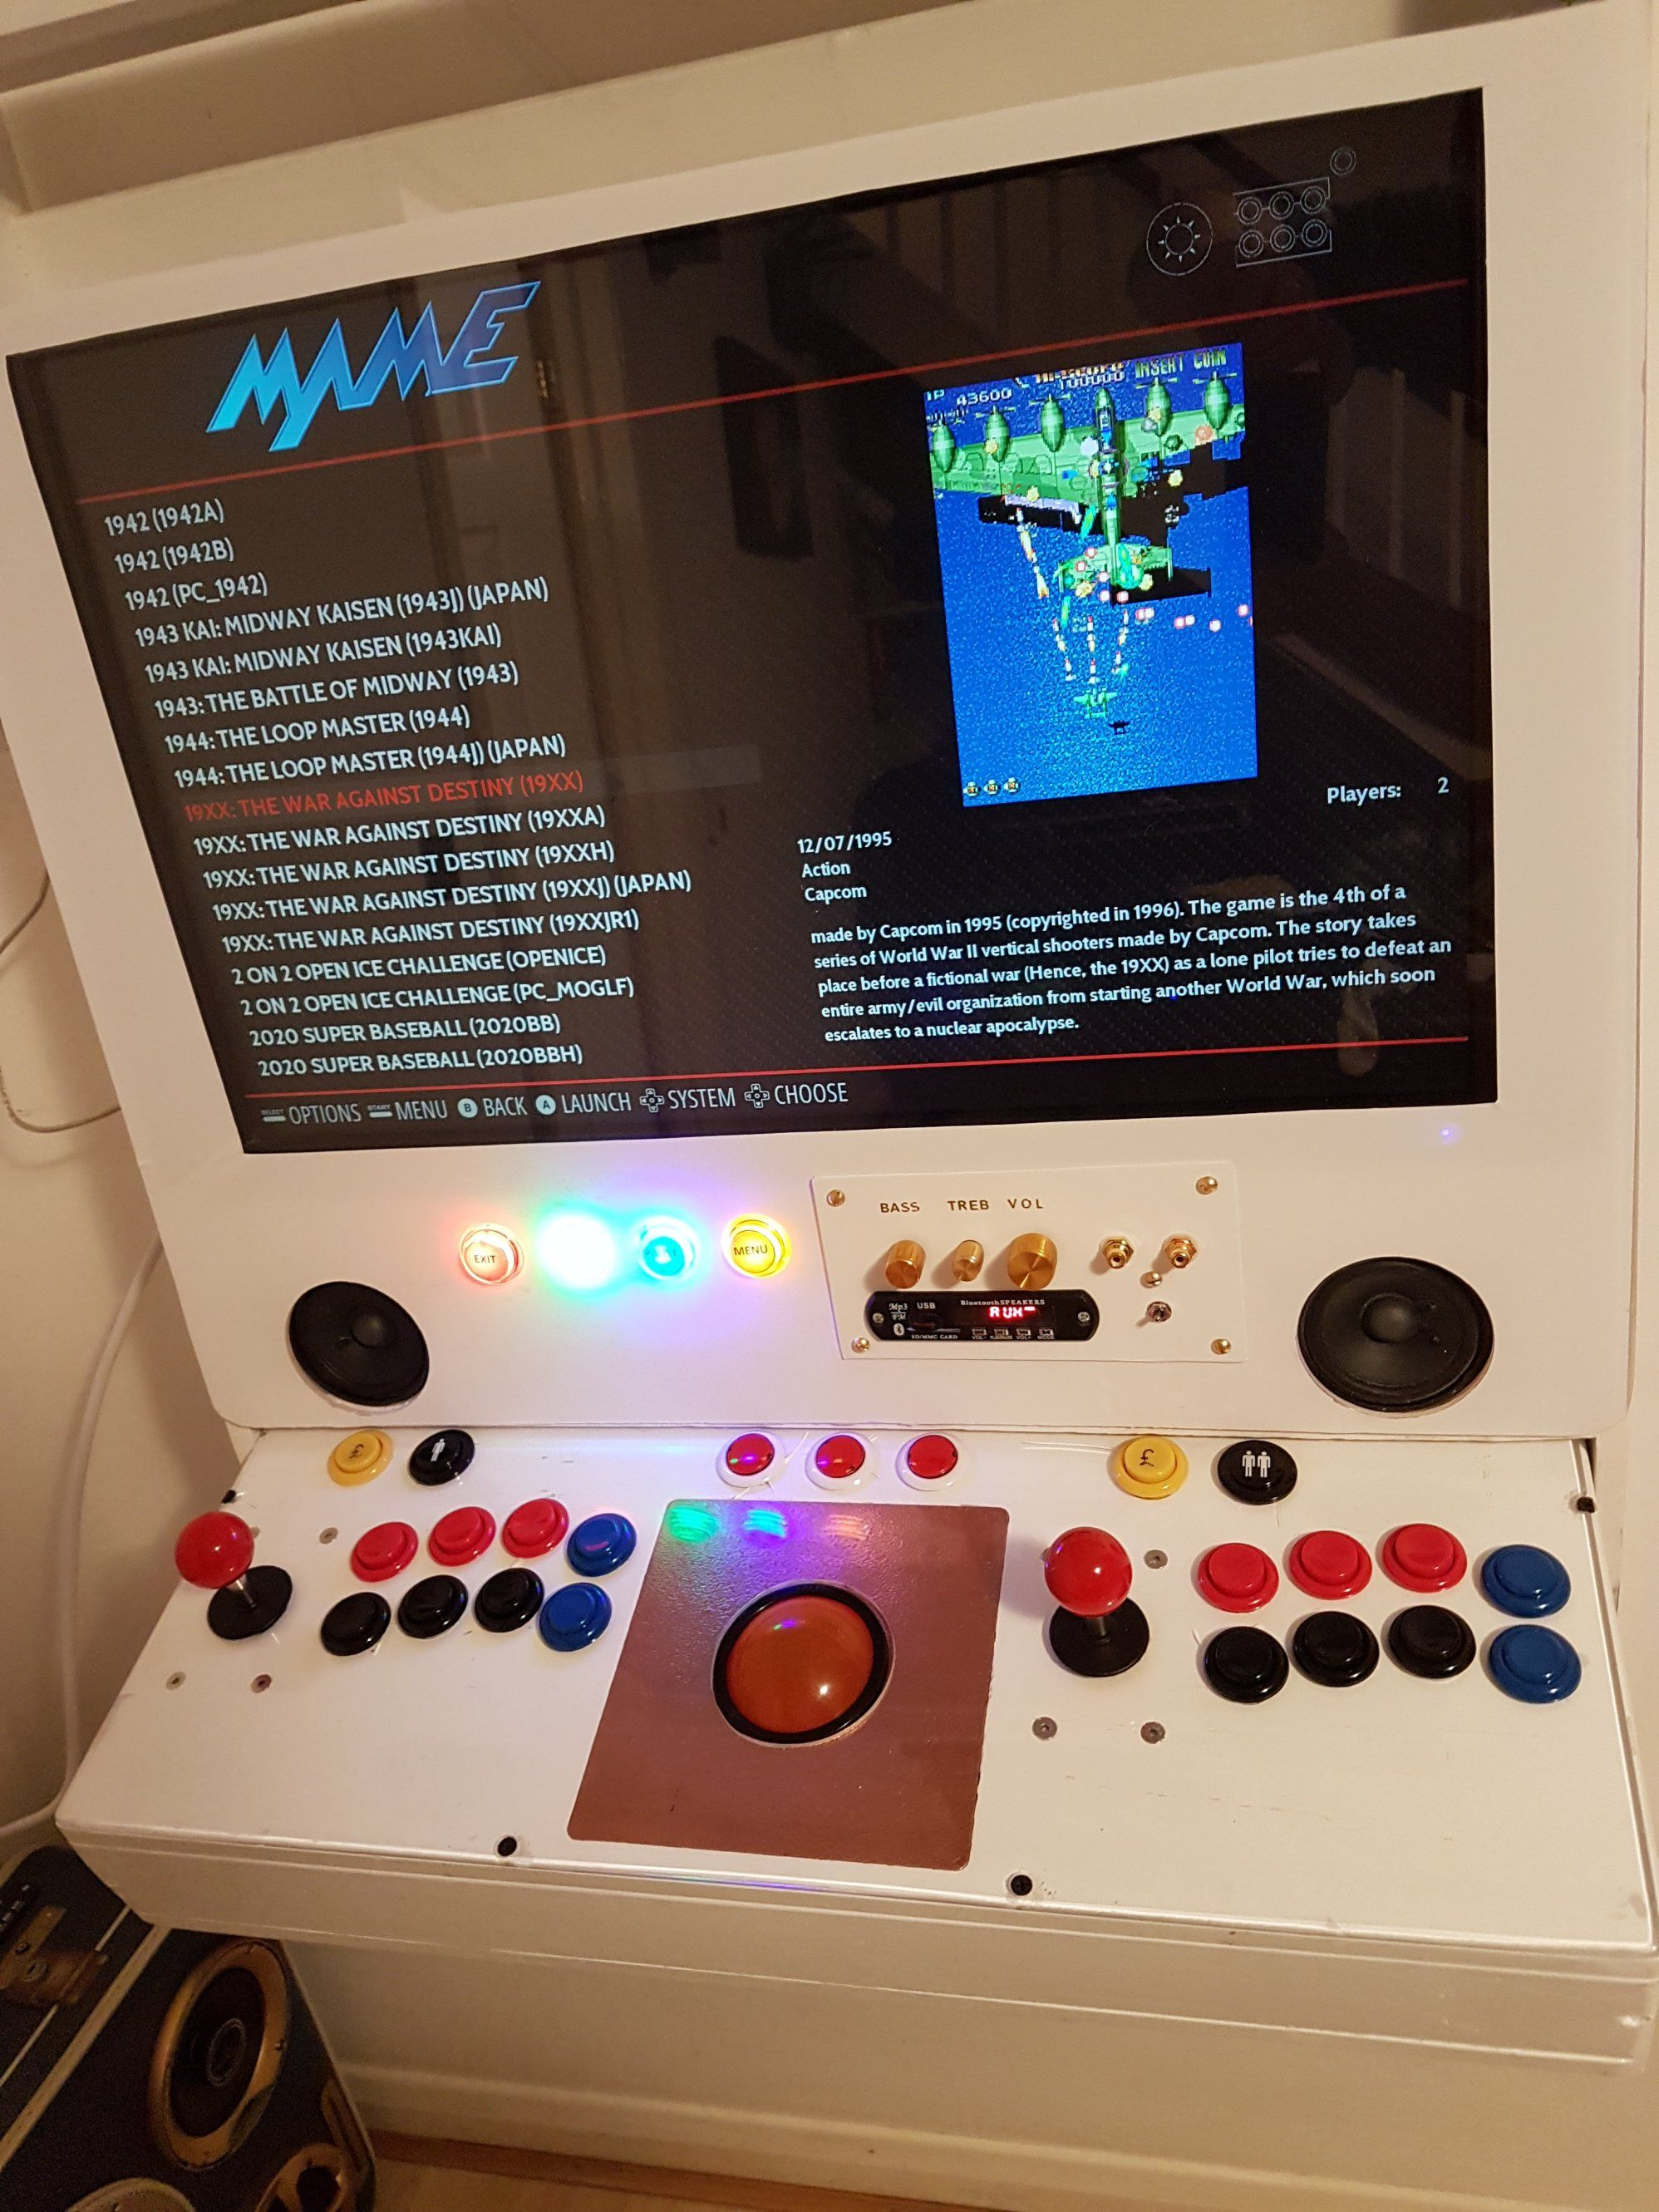 Pin by Enchant Gadgets on Flight Simulator Gamez | Arcade console